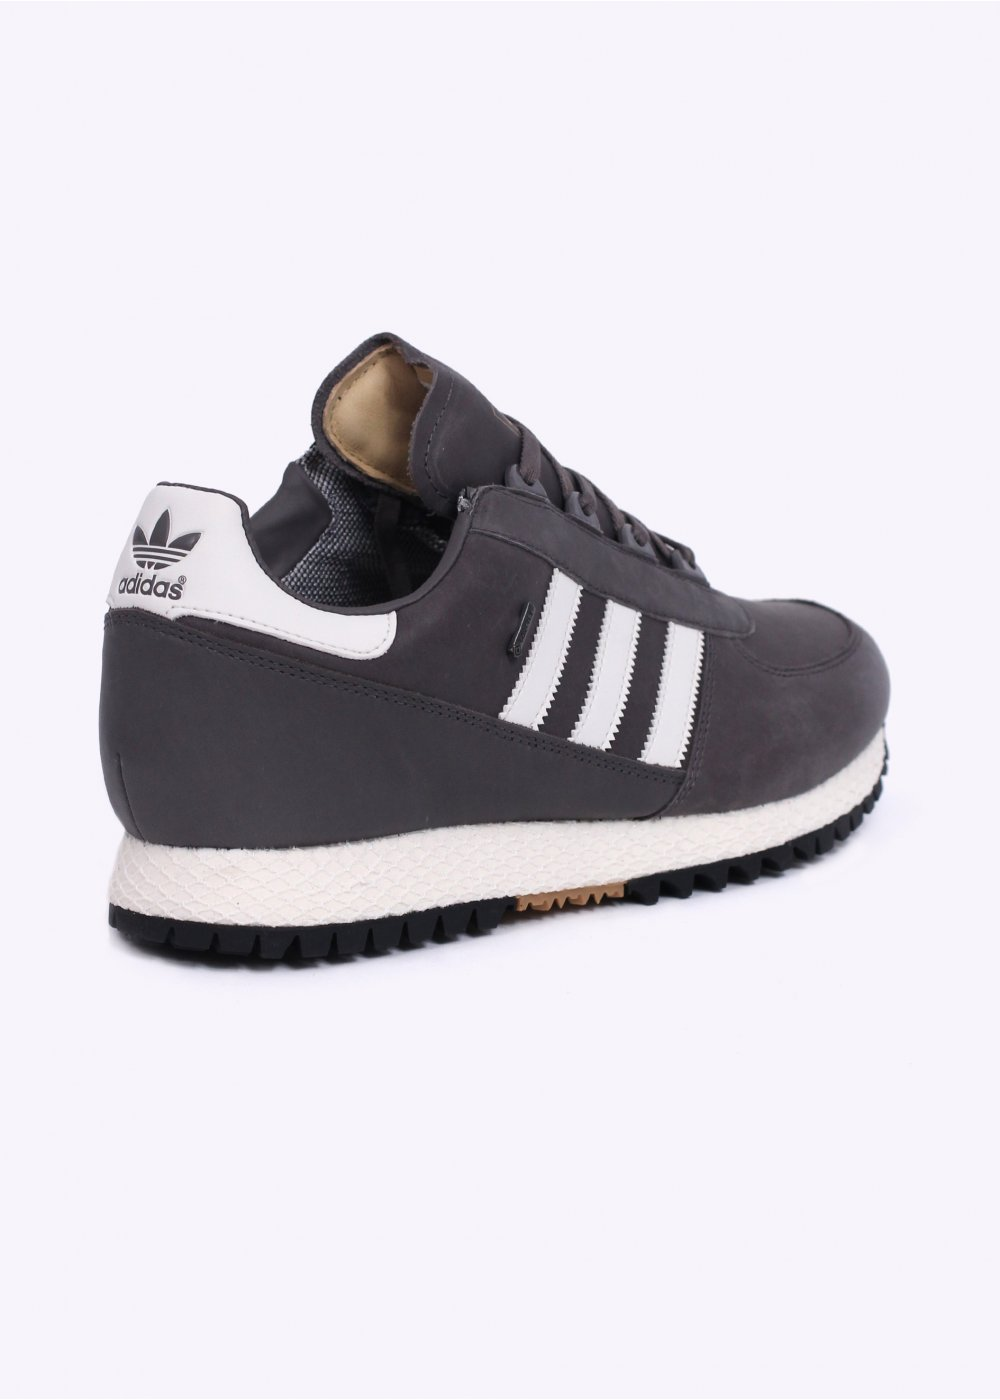 adidas originals waterproof trainers granite white